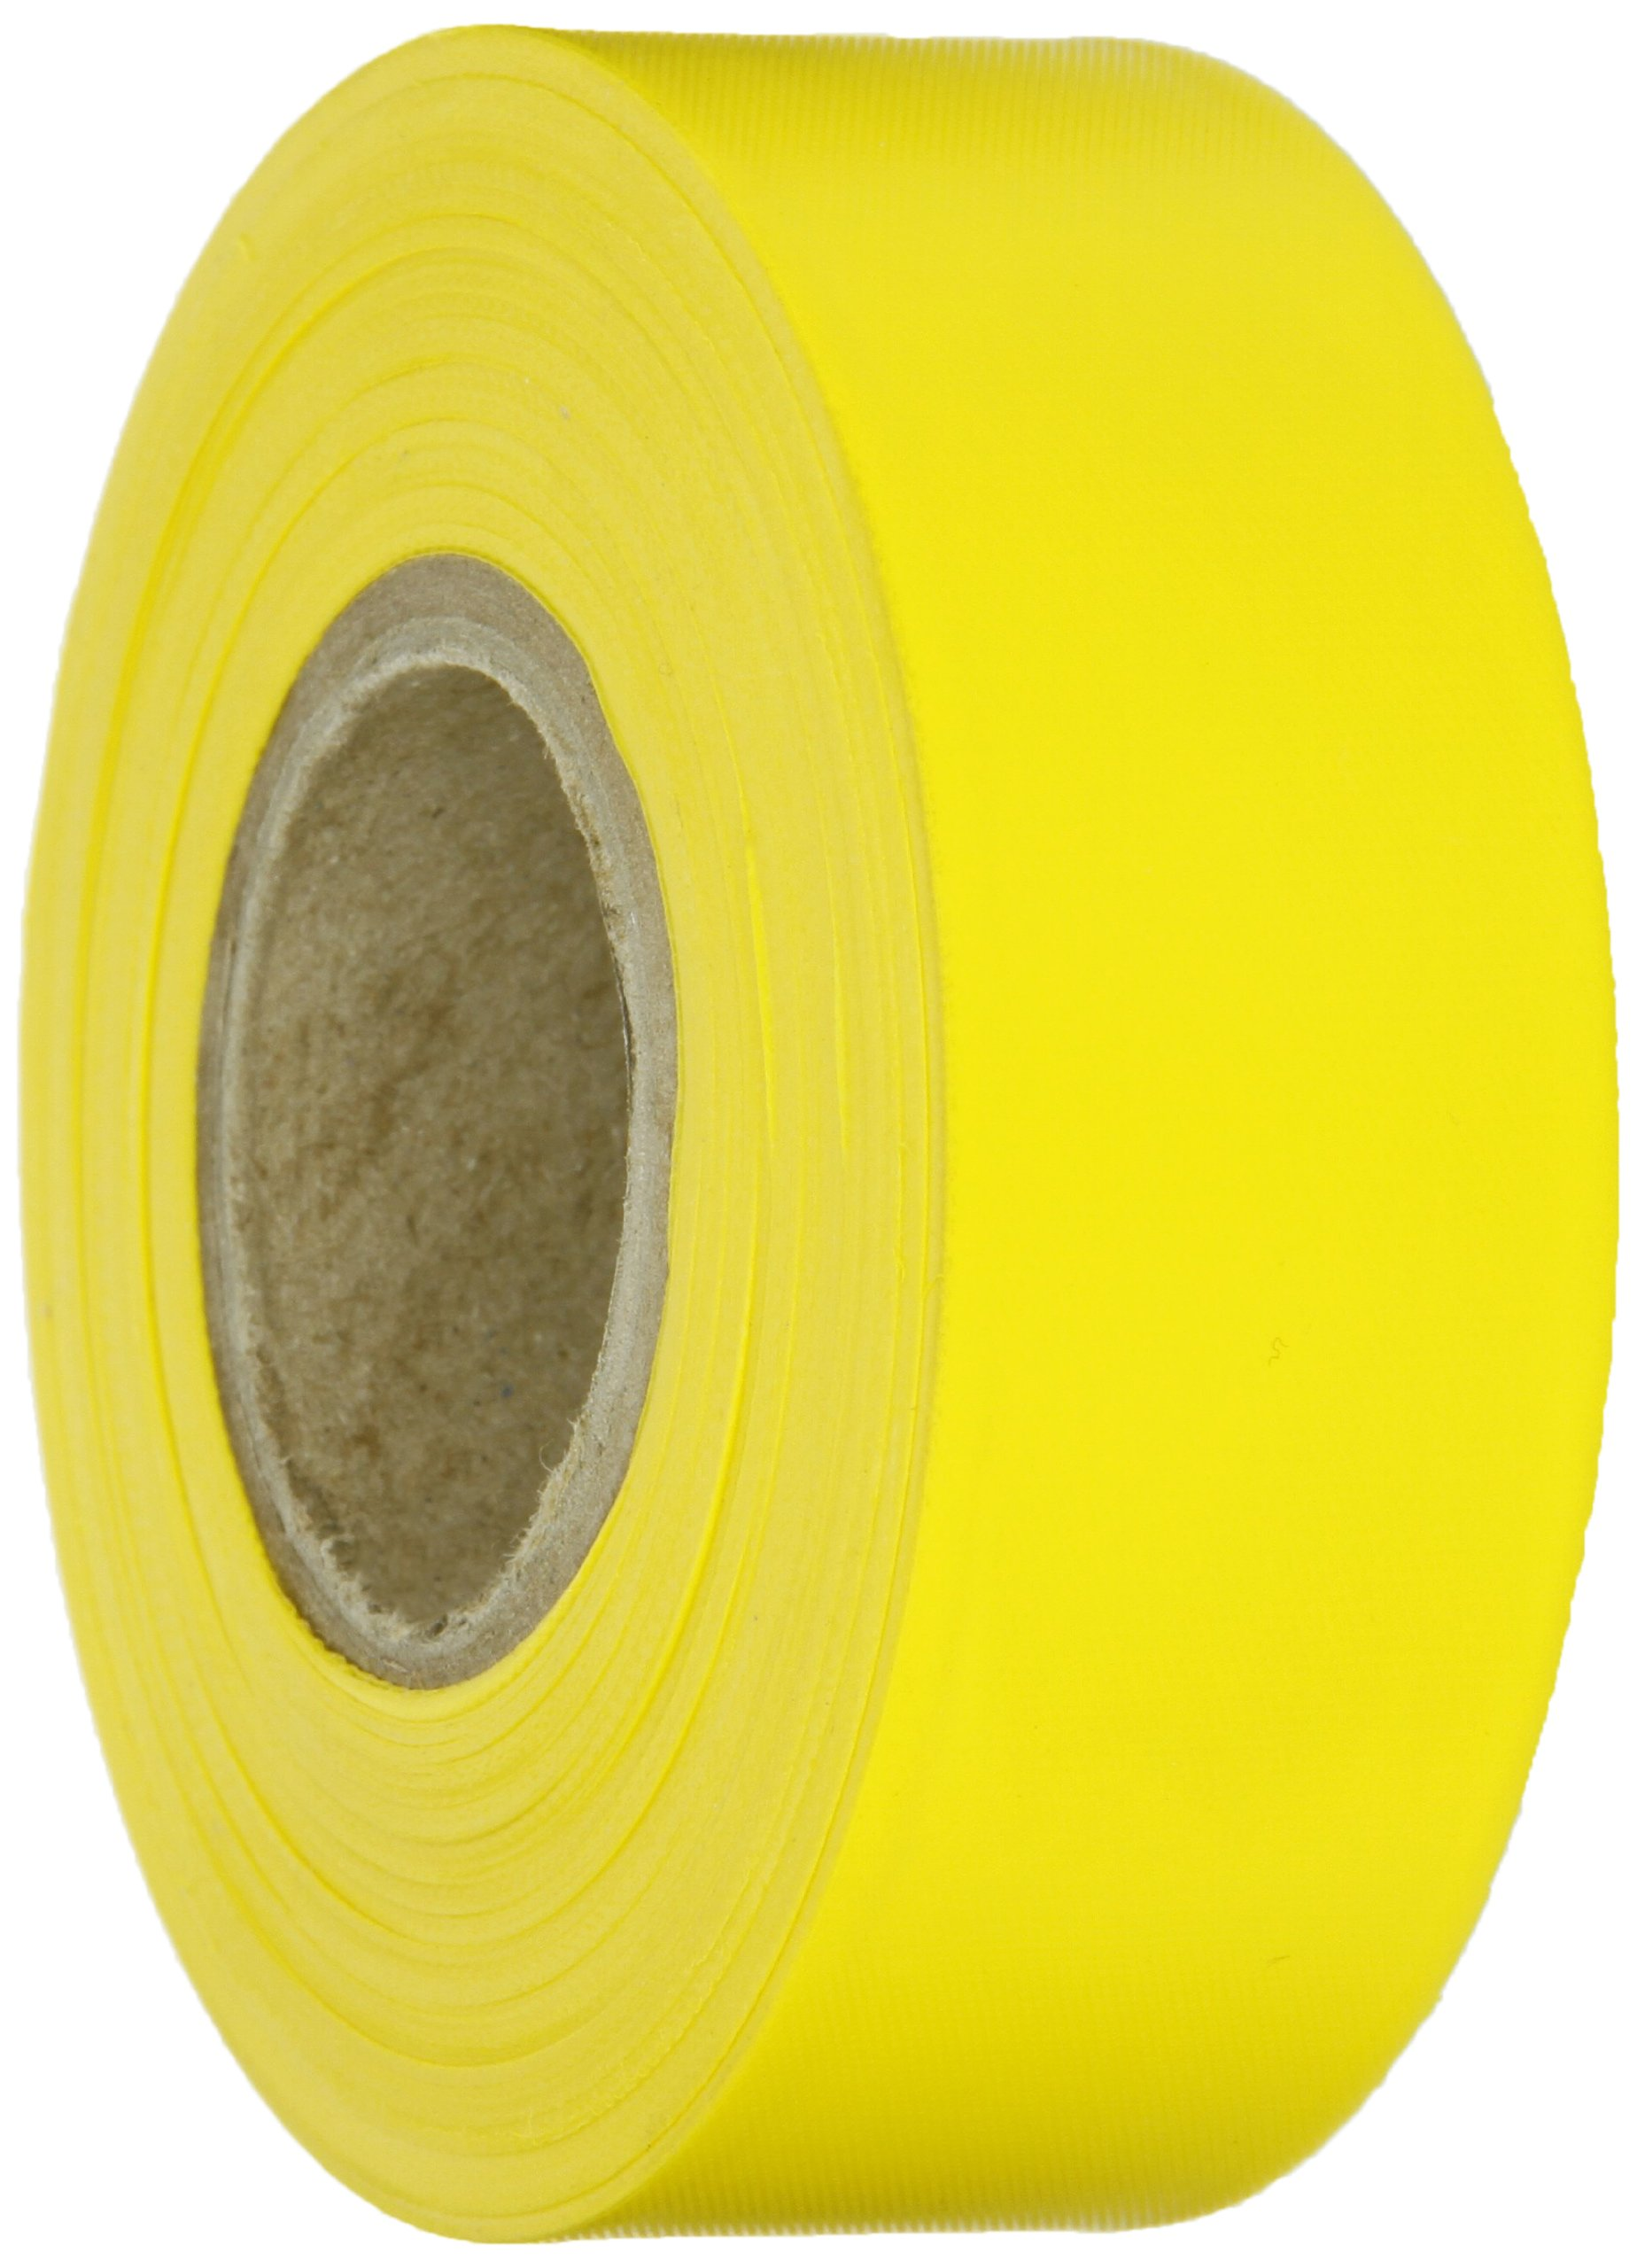 Brady Yellow Flagging Tape for Boundaries and Hazardous Areas - Non-Adhesive Tape, 1.188'' Width, 300' Length (Pack of 1) - 58347